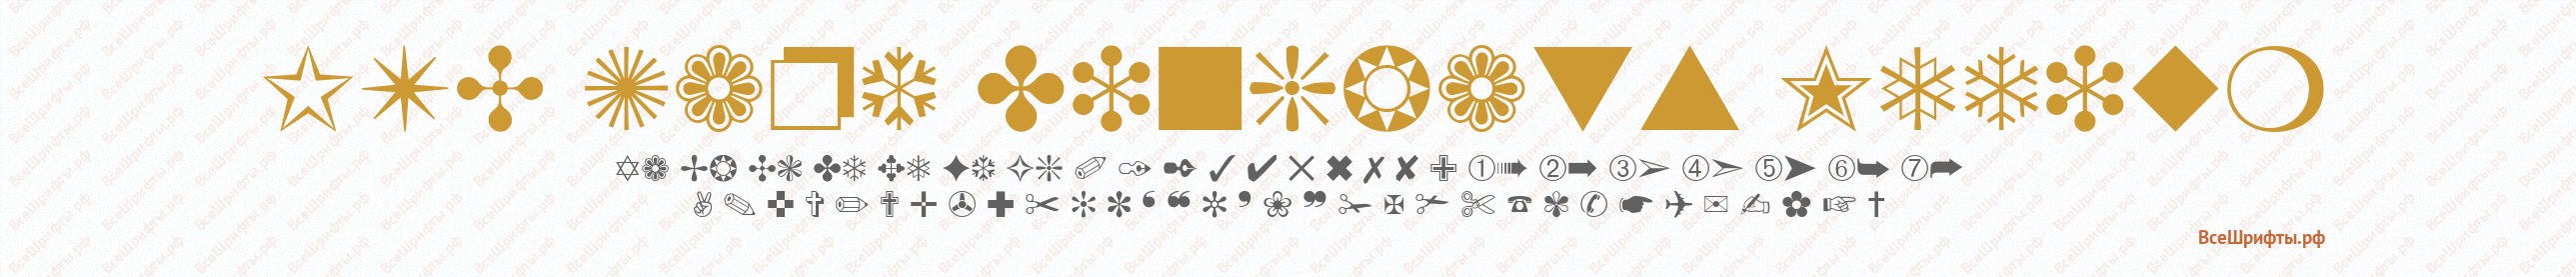 Шрифт ITC Zapf Dingbats Medium